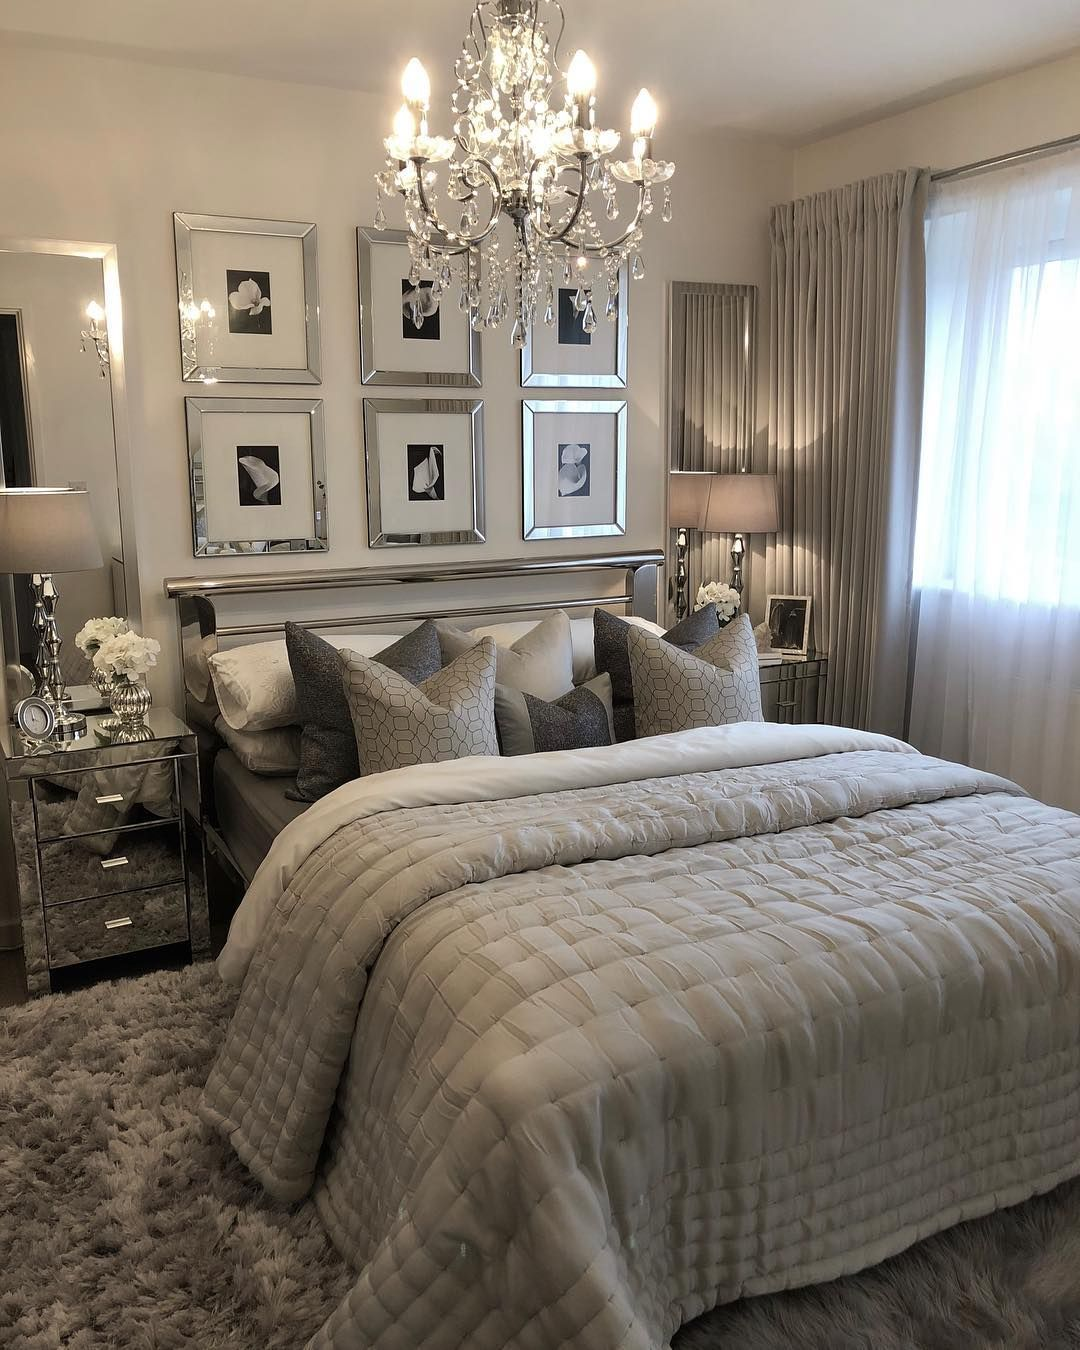 Juliette Bedroom Furniture Four Bedroom Apartment Plans Dinosaur Bedroom Accessories Uk Bedroom Ideas On A Budget: Pin By Moda 4 Life On { Fabulosity At Home } In 2019